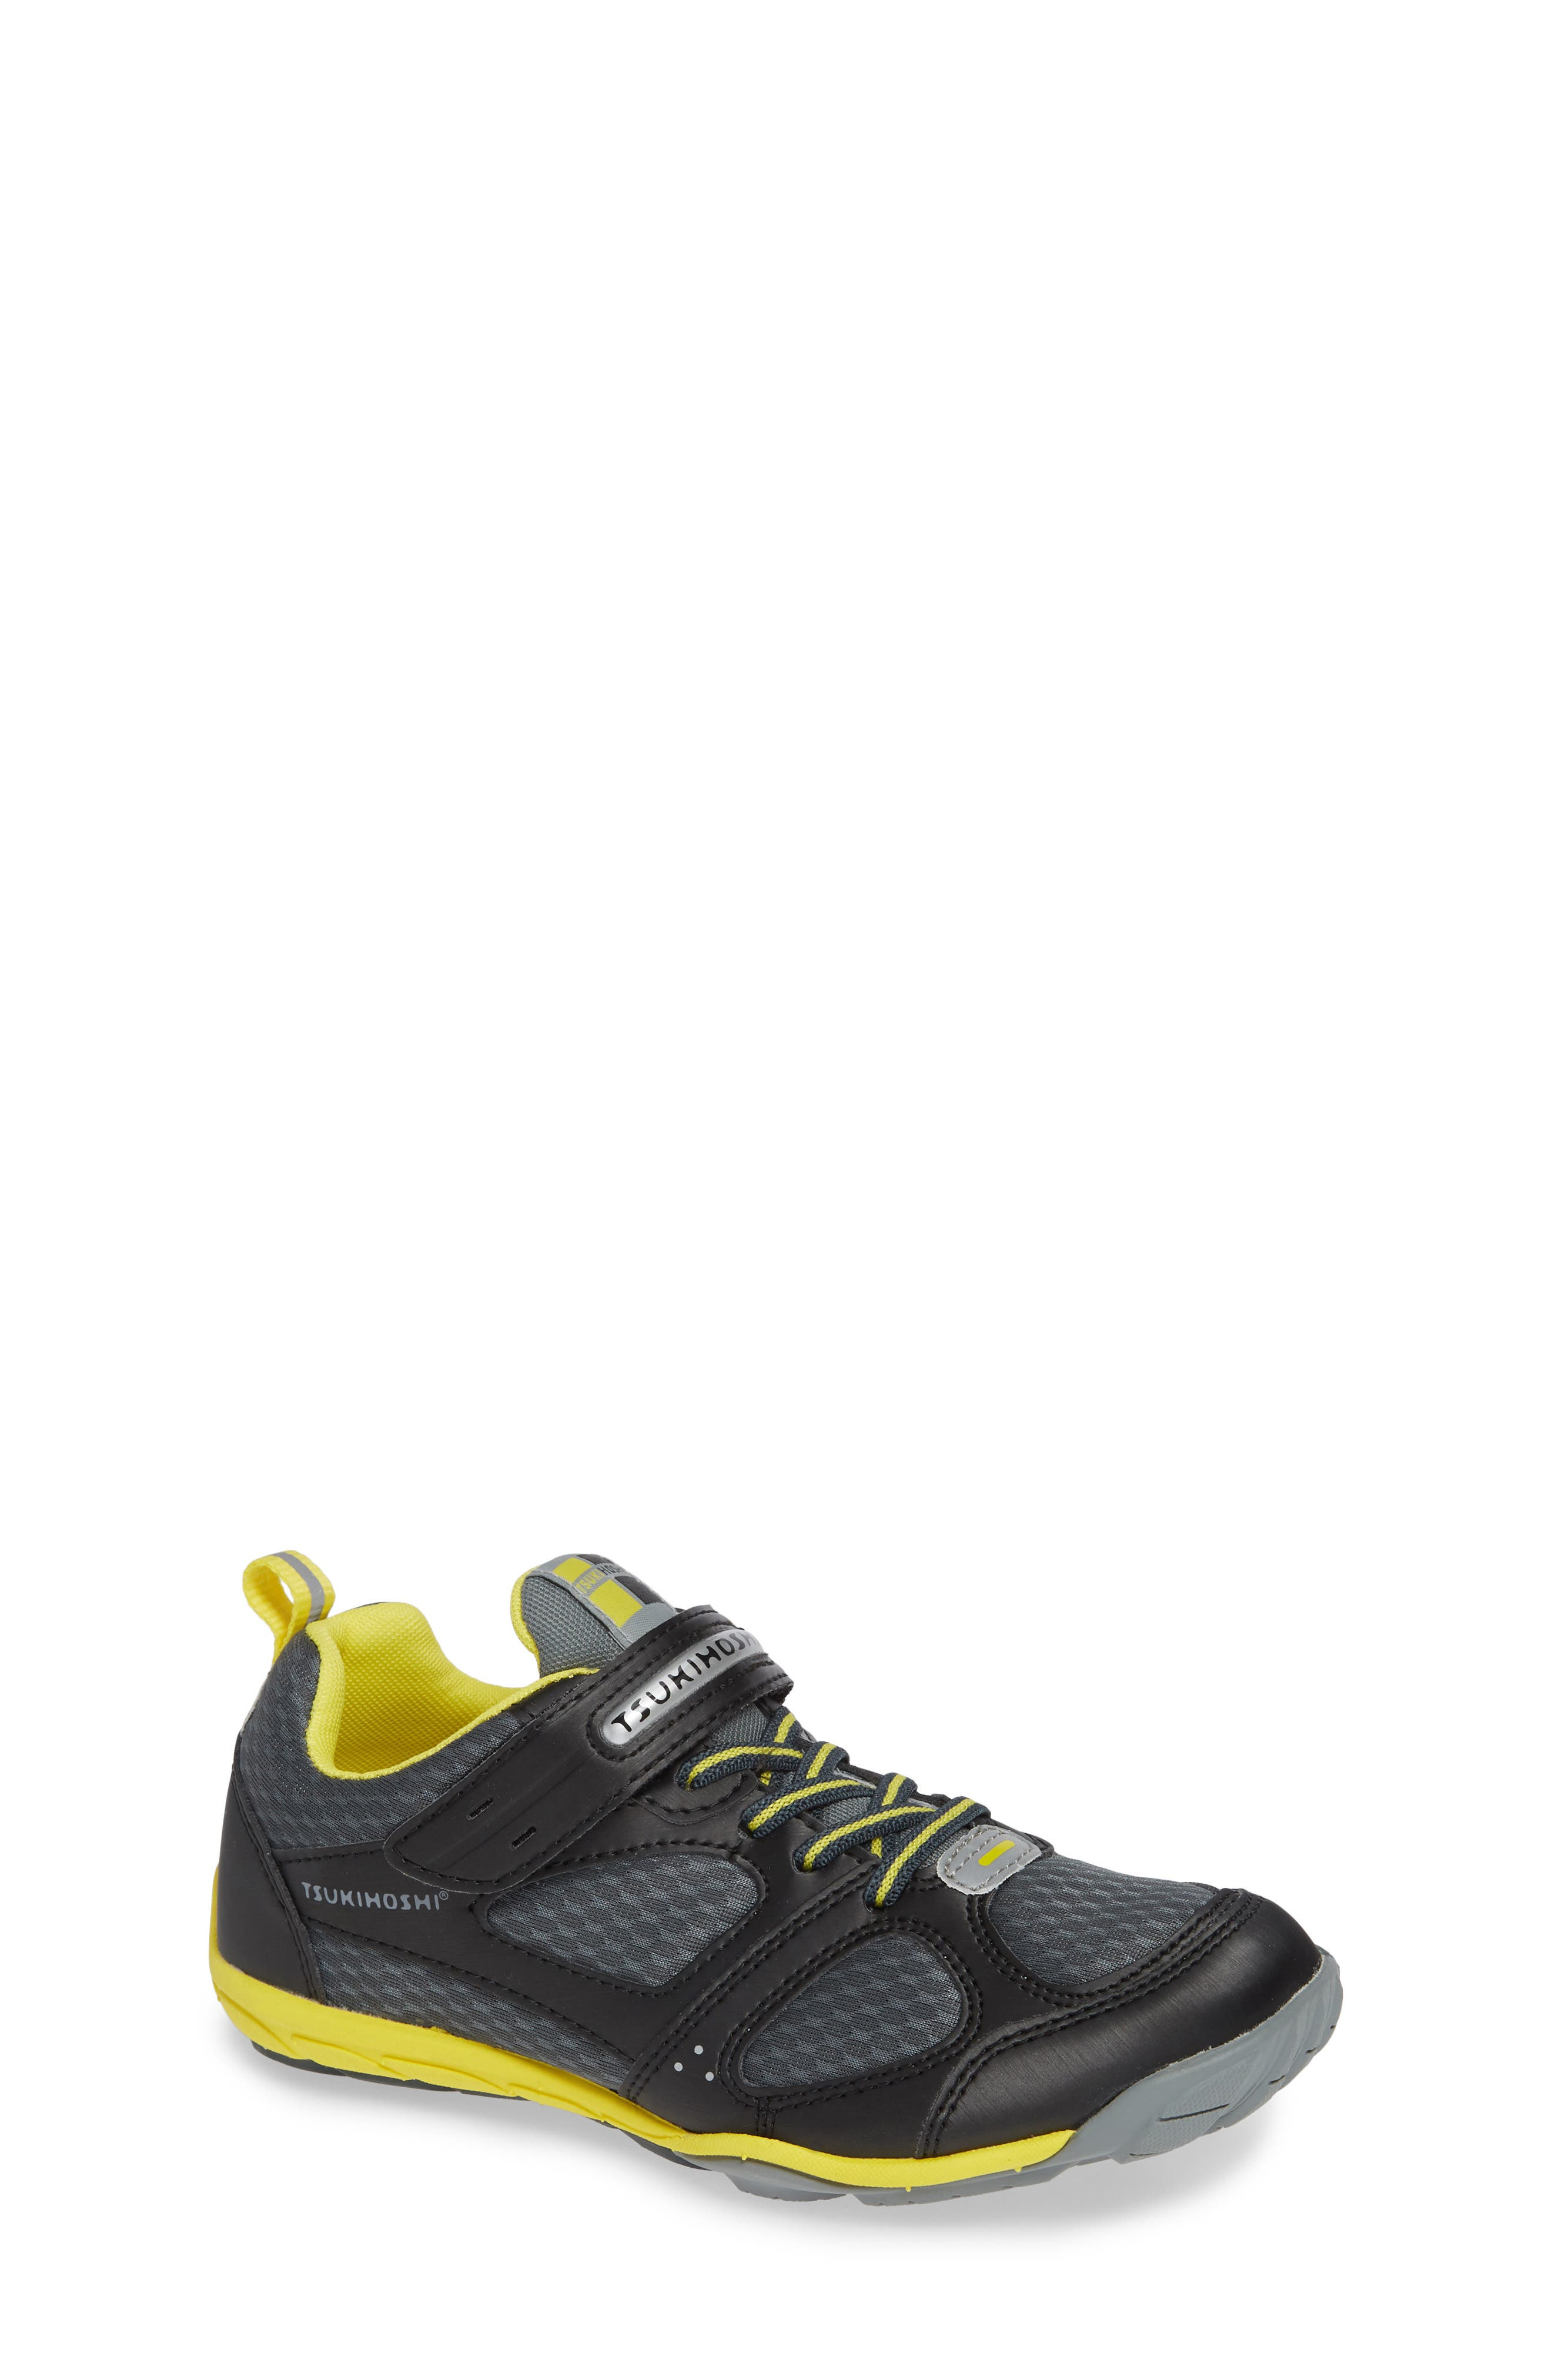 TSUKIHOSHI, Mako Washable Sneaker, Main thumbnail 1, color, BLACK/ YELLOW